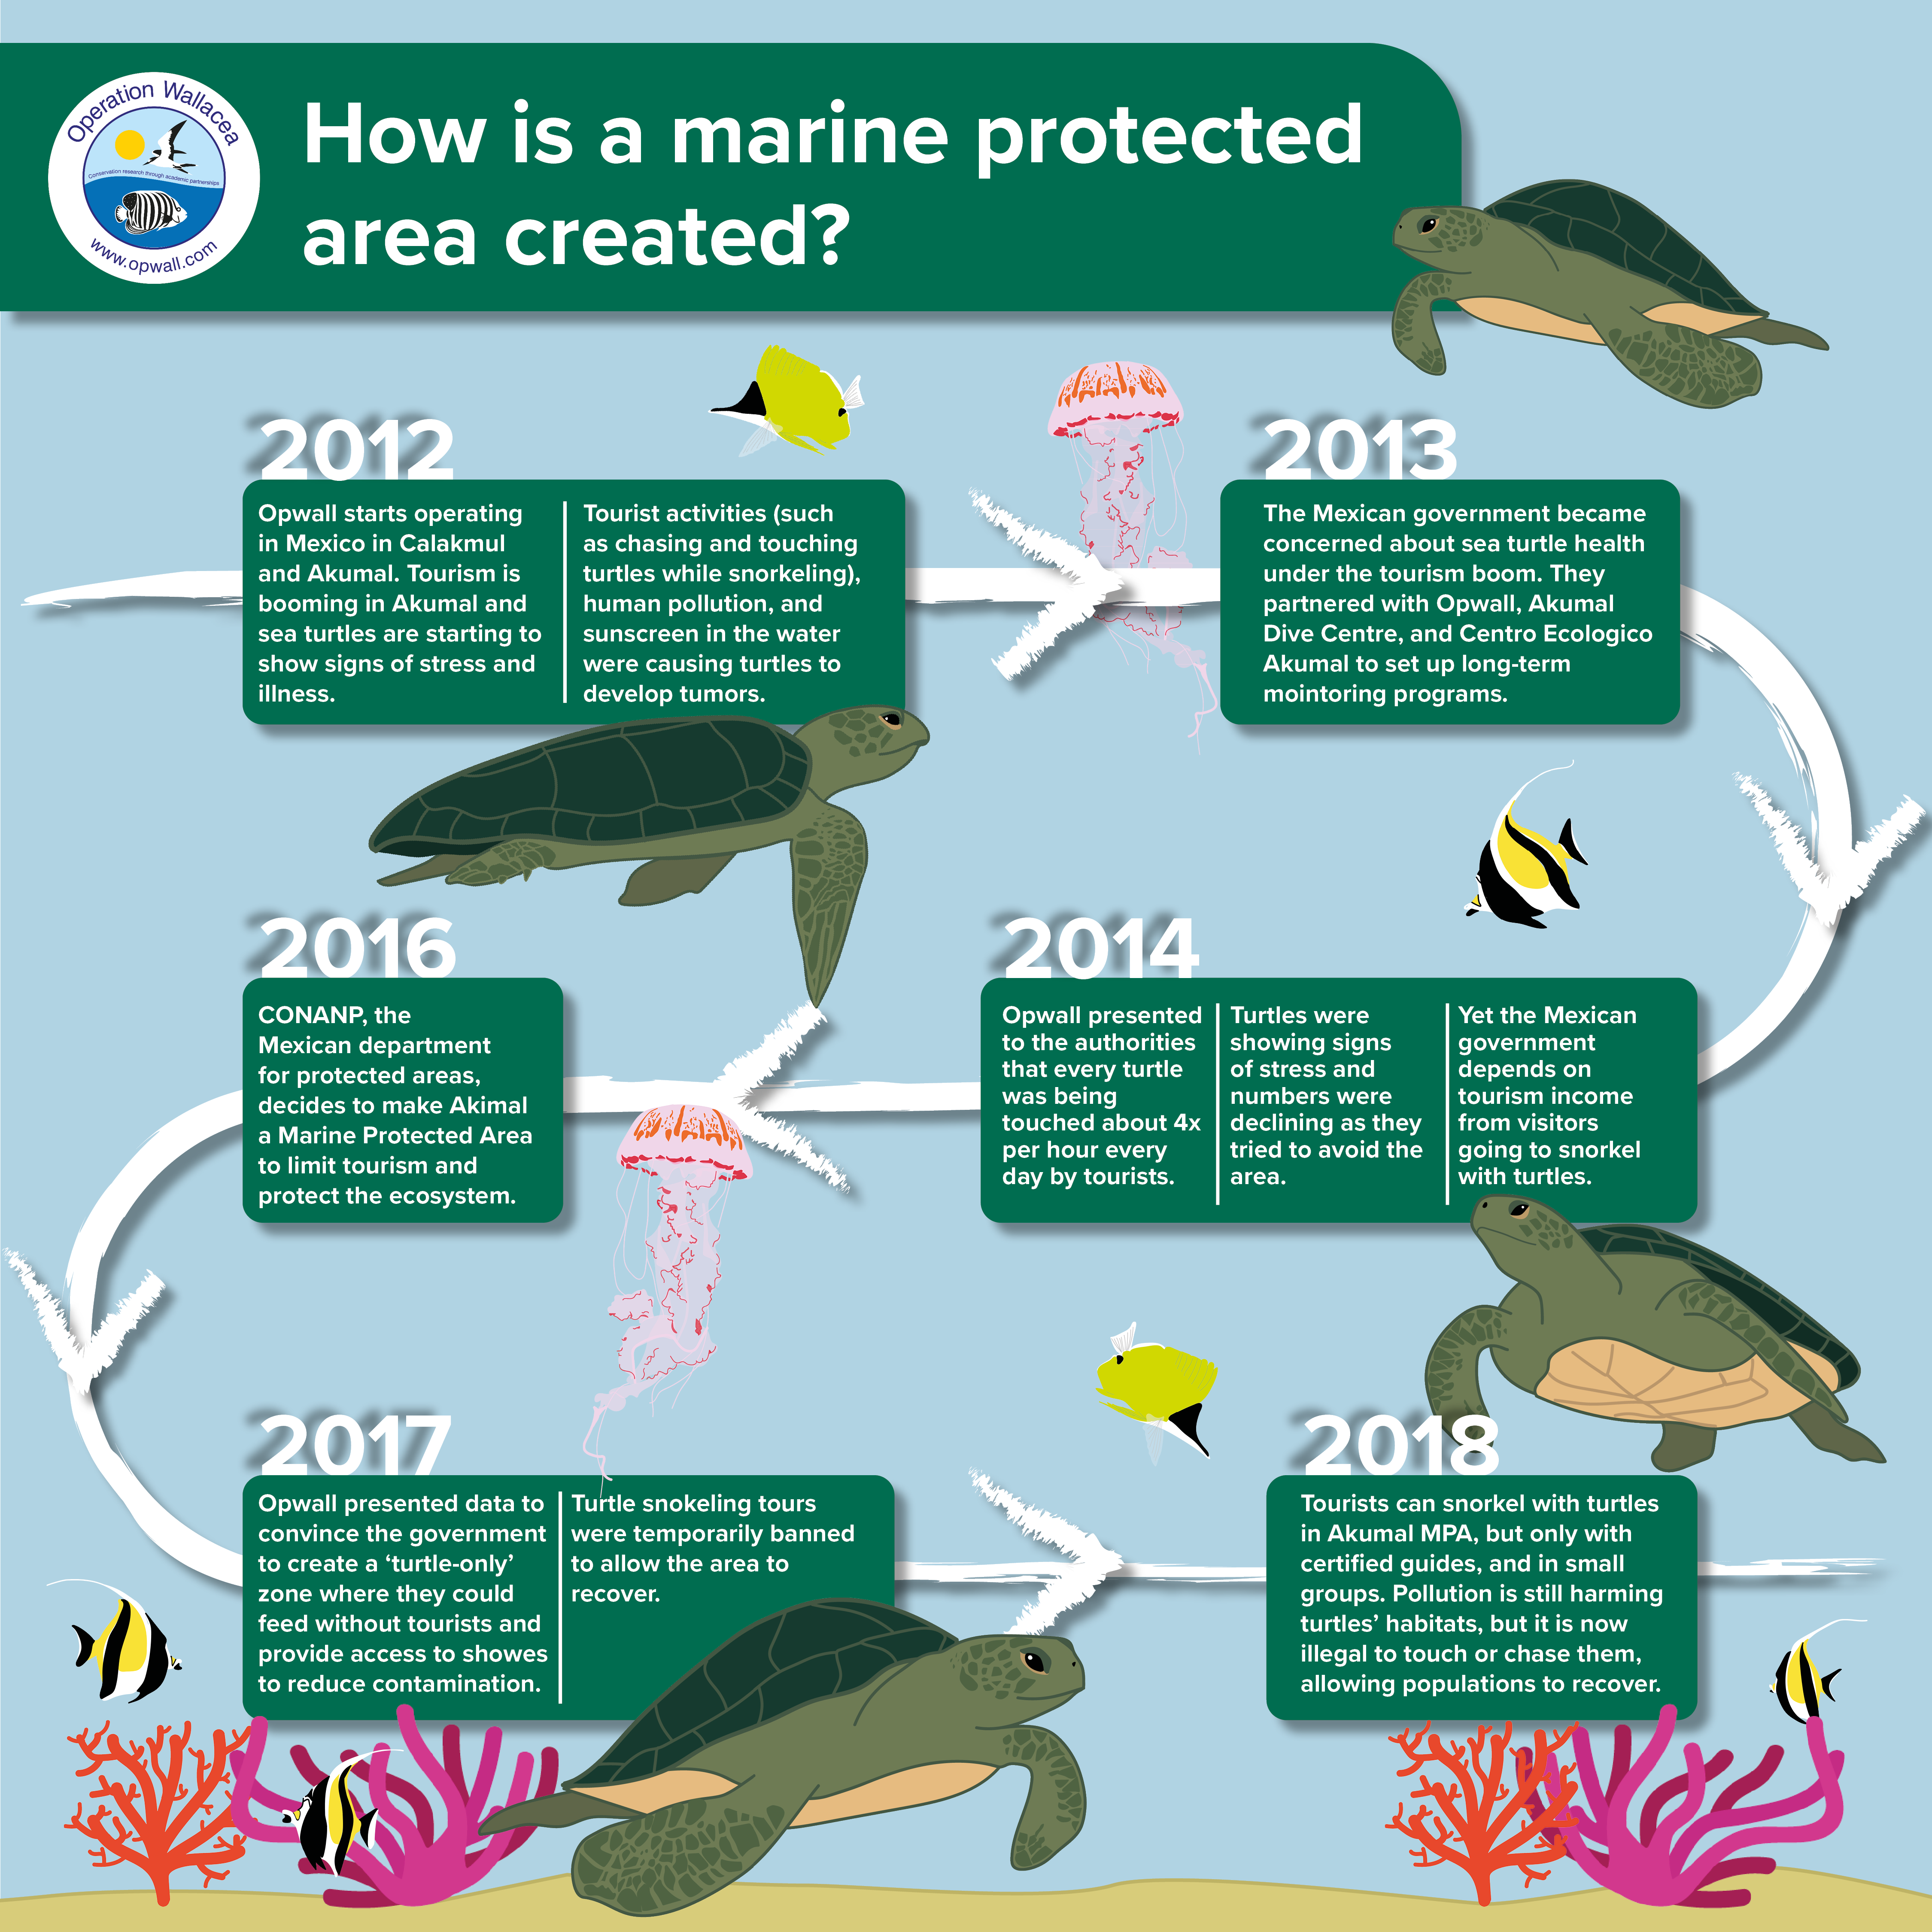 An infographic showing the timeline of how the Akumal Bay Marine Protected Area was created in Mexico. Operation Wallacea data on green sea turtle health was used to create the Marine Protected Area